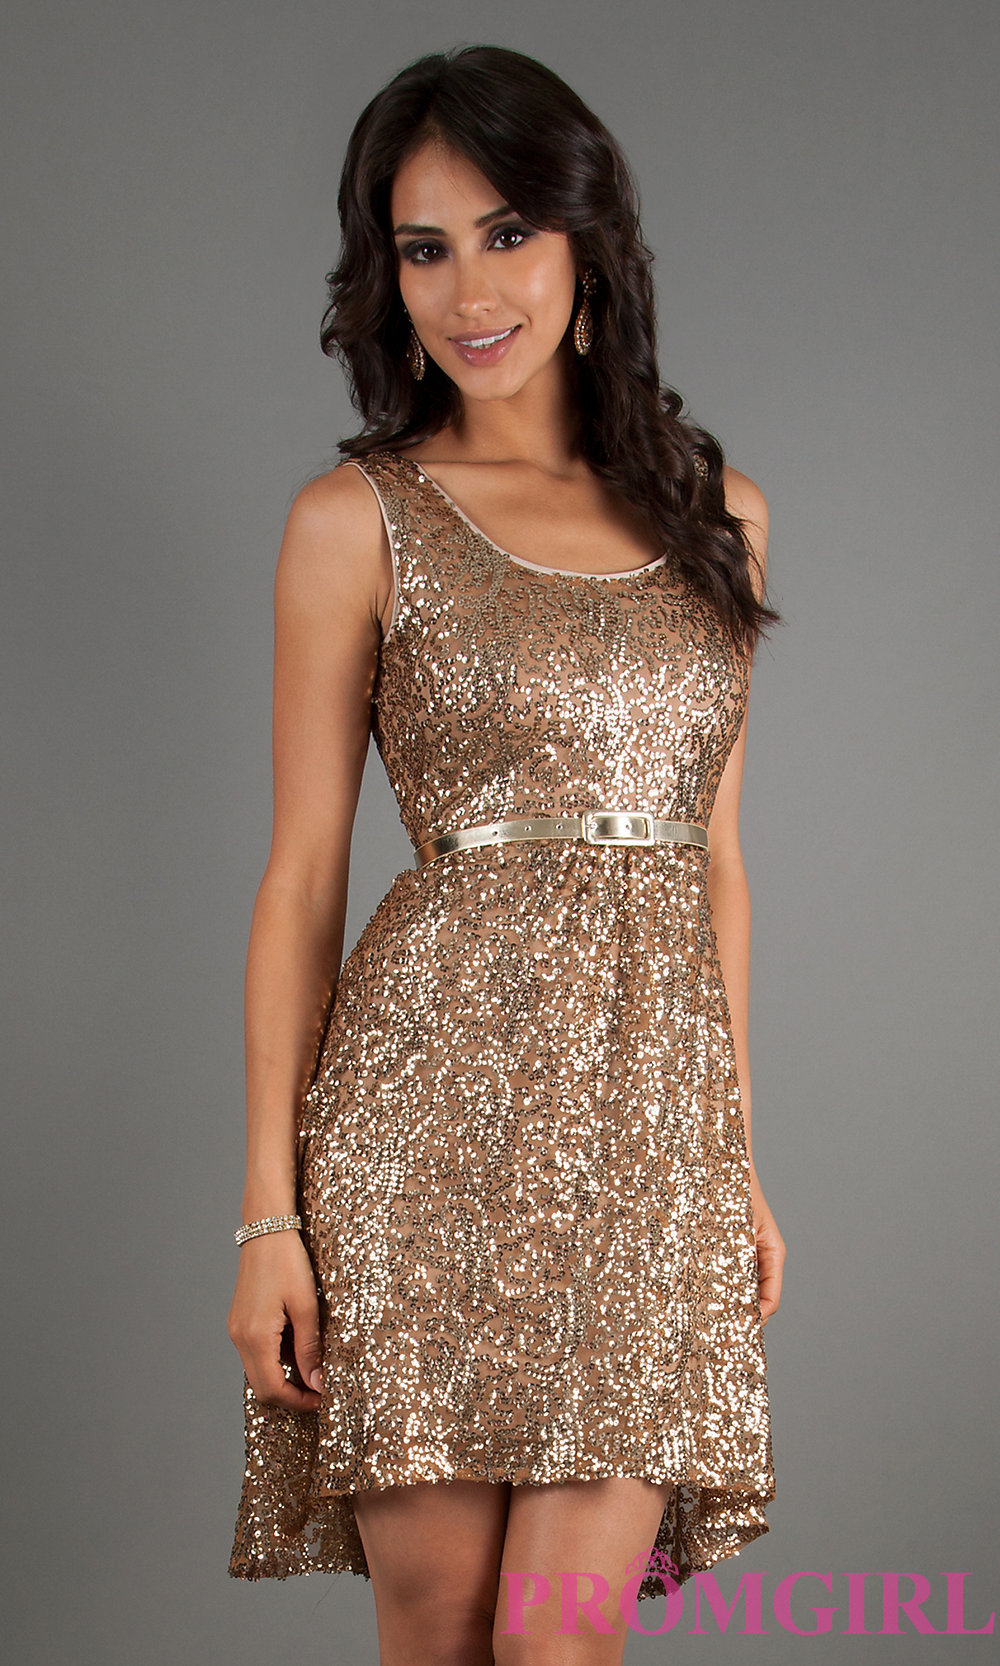 Short Gold Glitter Dress And The Trend Of The Year